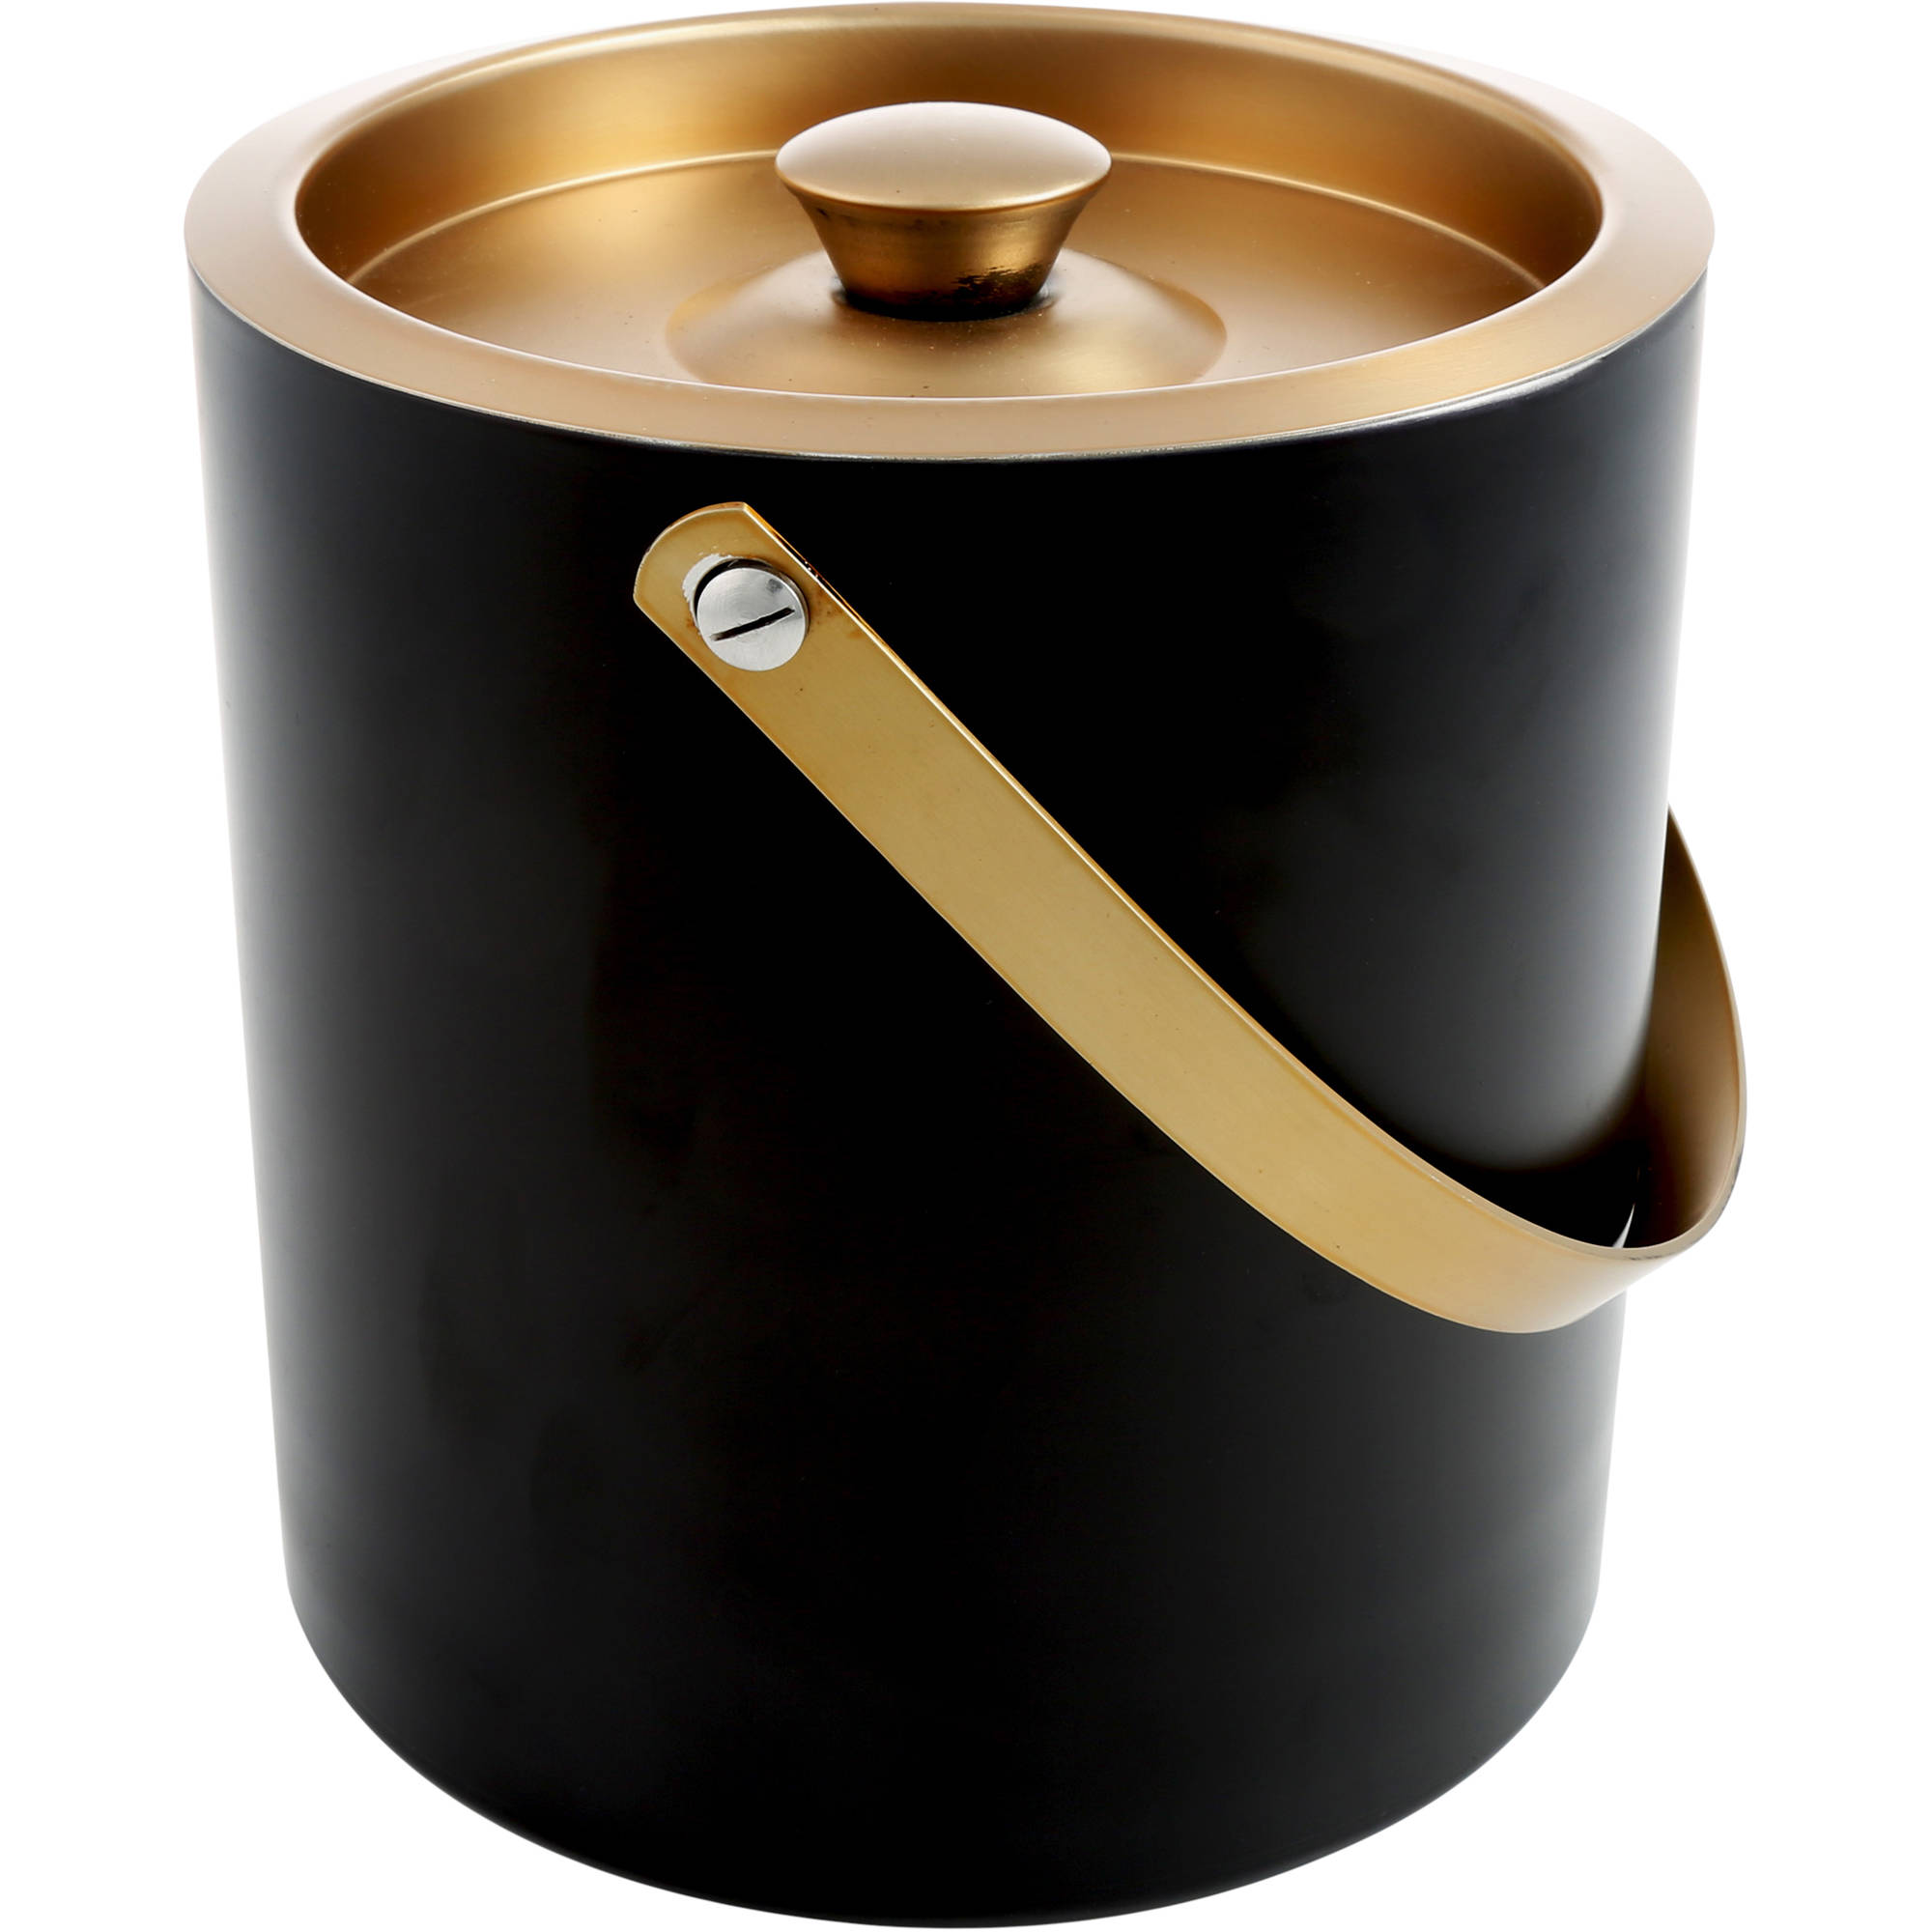 Cambridge Dorian Brass and Black 3 qt Double-Walled Ice Bucket by Cambridge